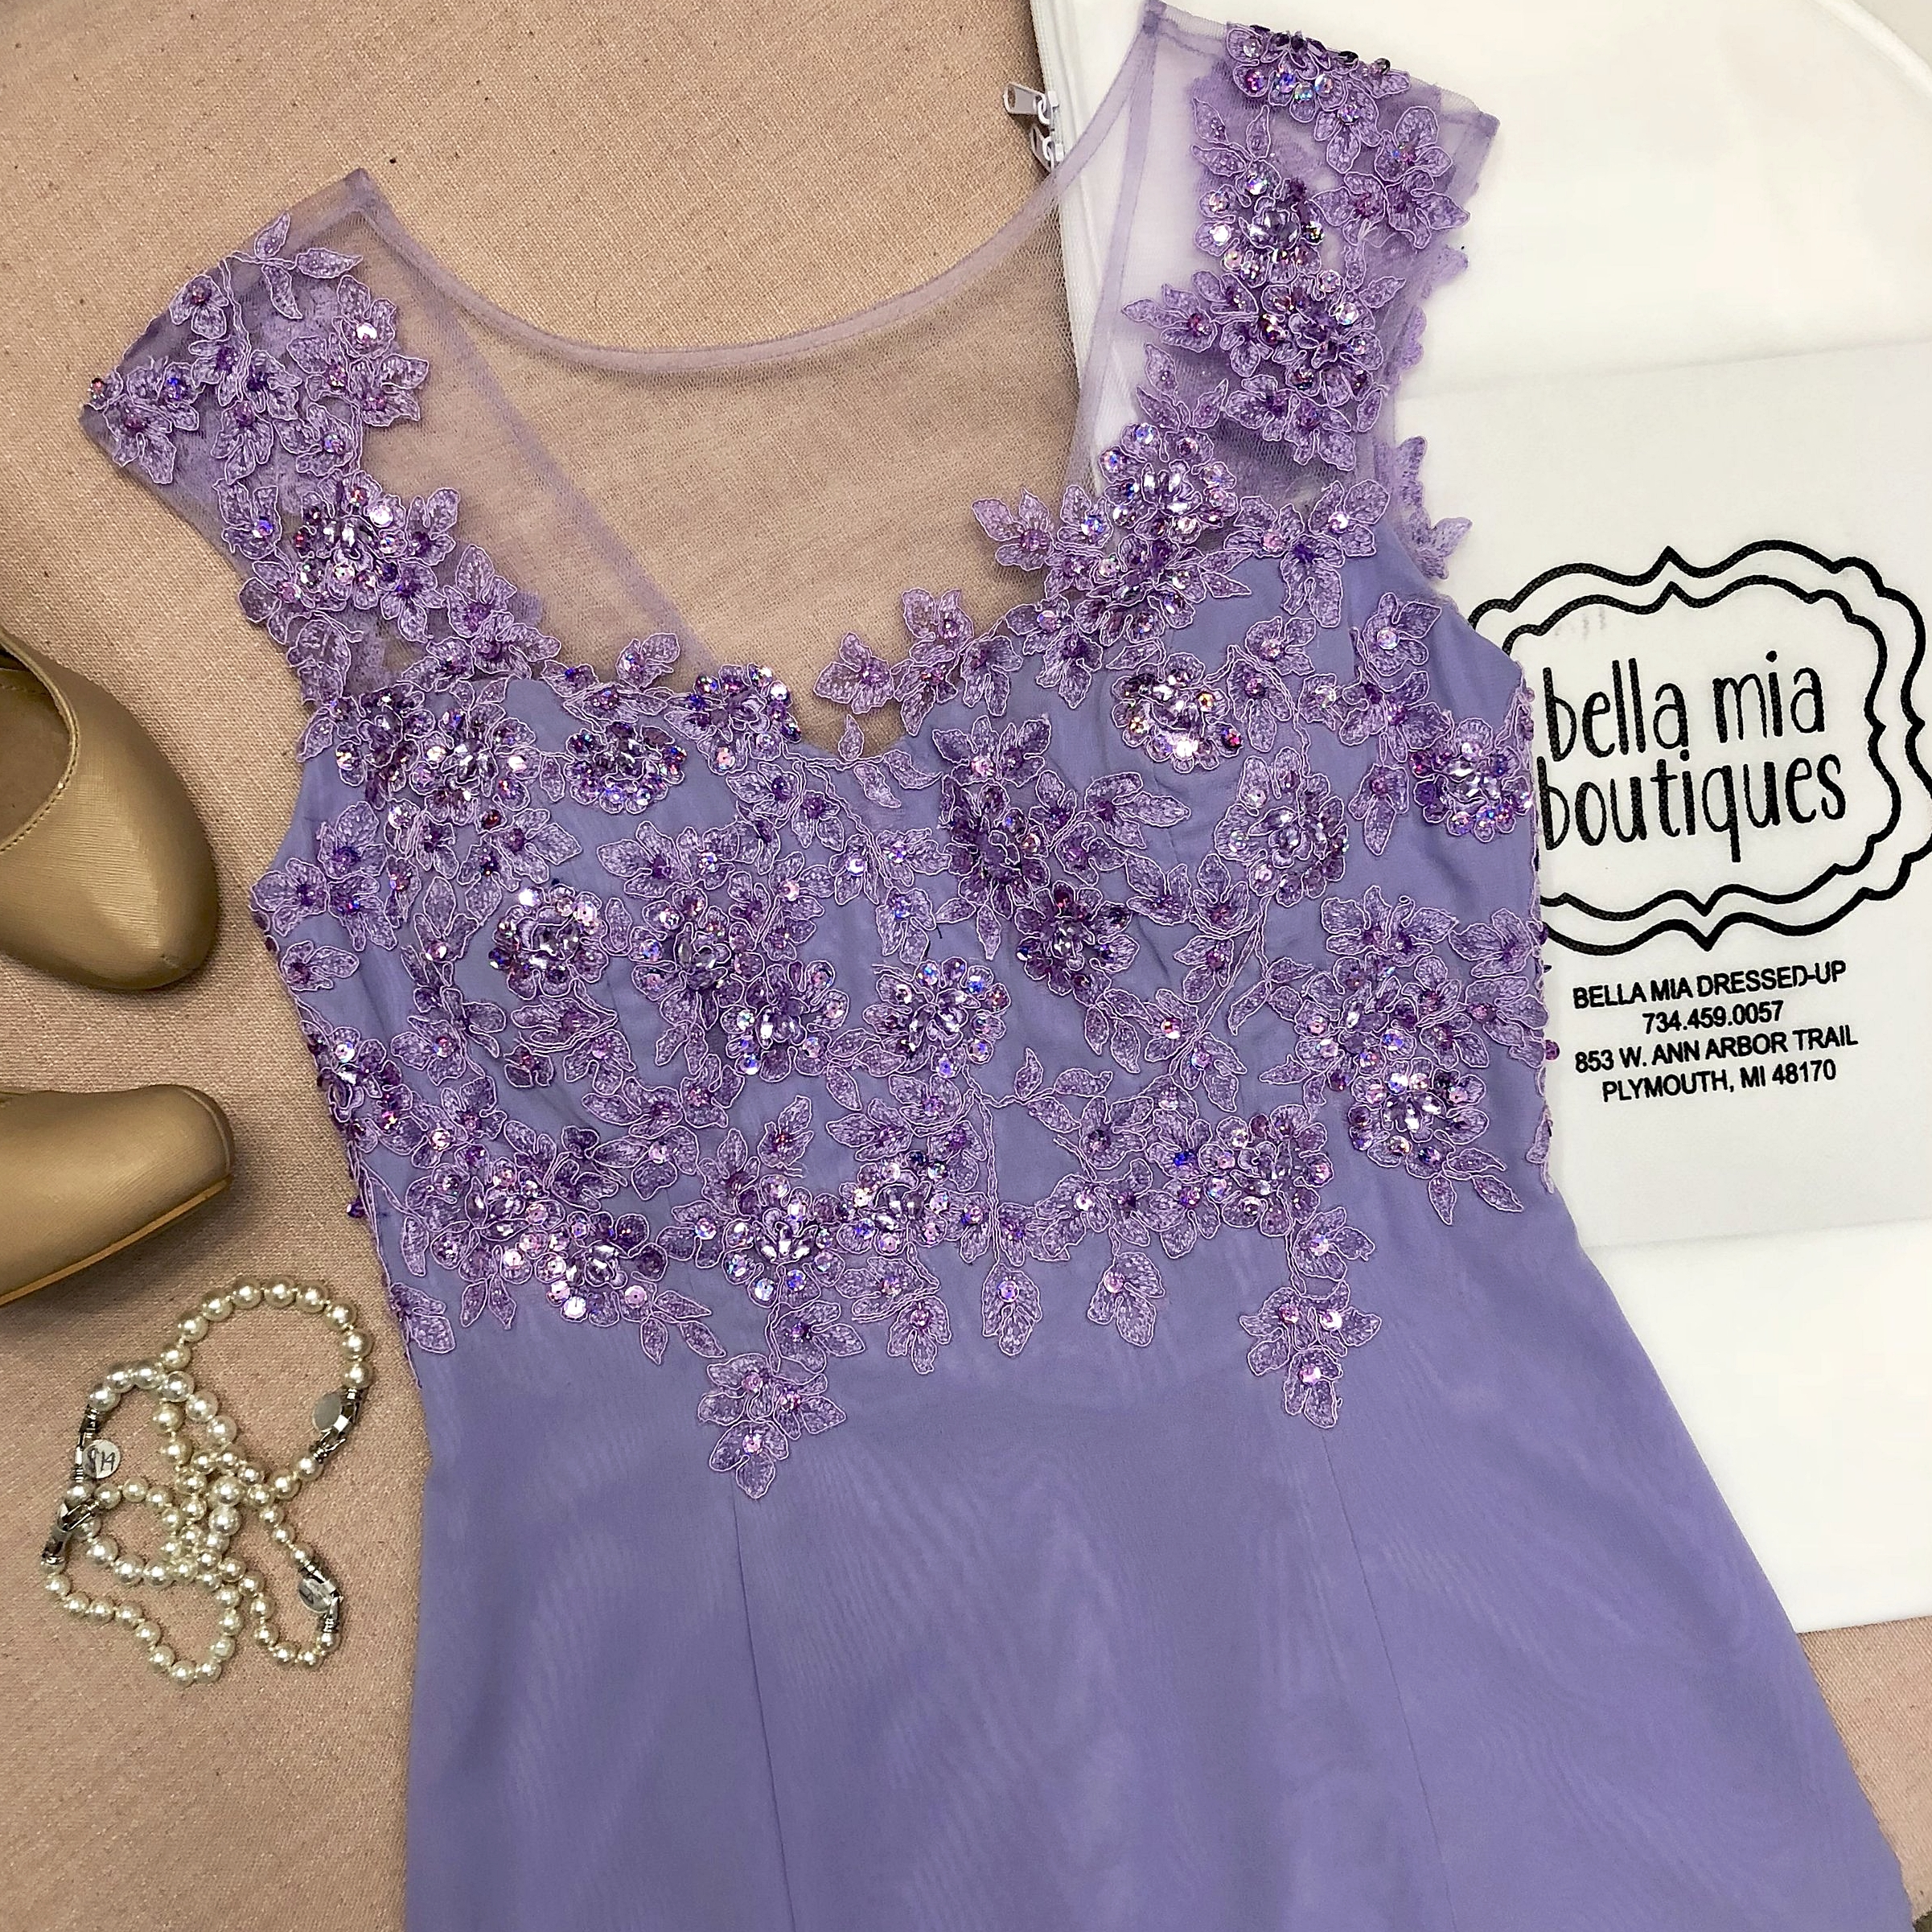 Bella-Mia-Dressed-Up-Hope-Closet-Prom-Dress-Donation.jpg